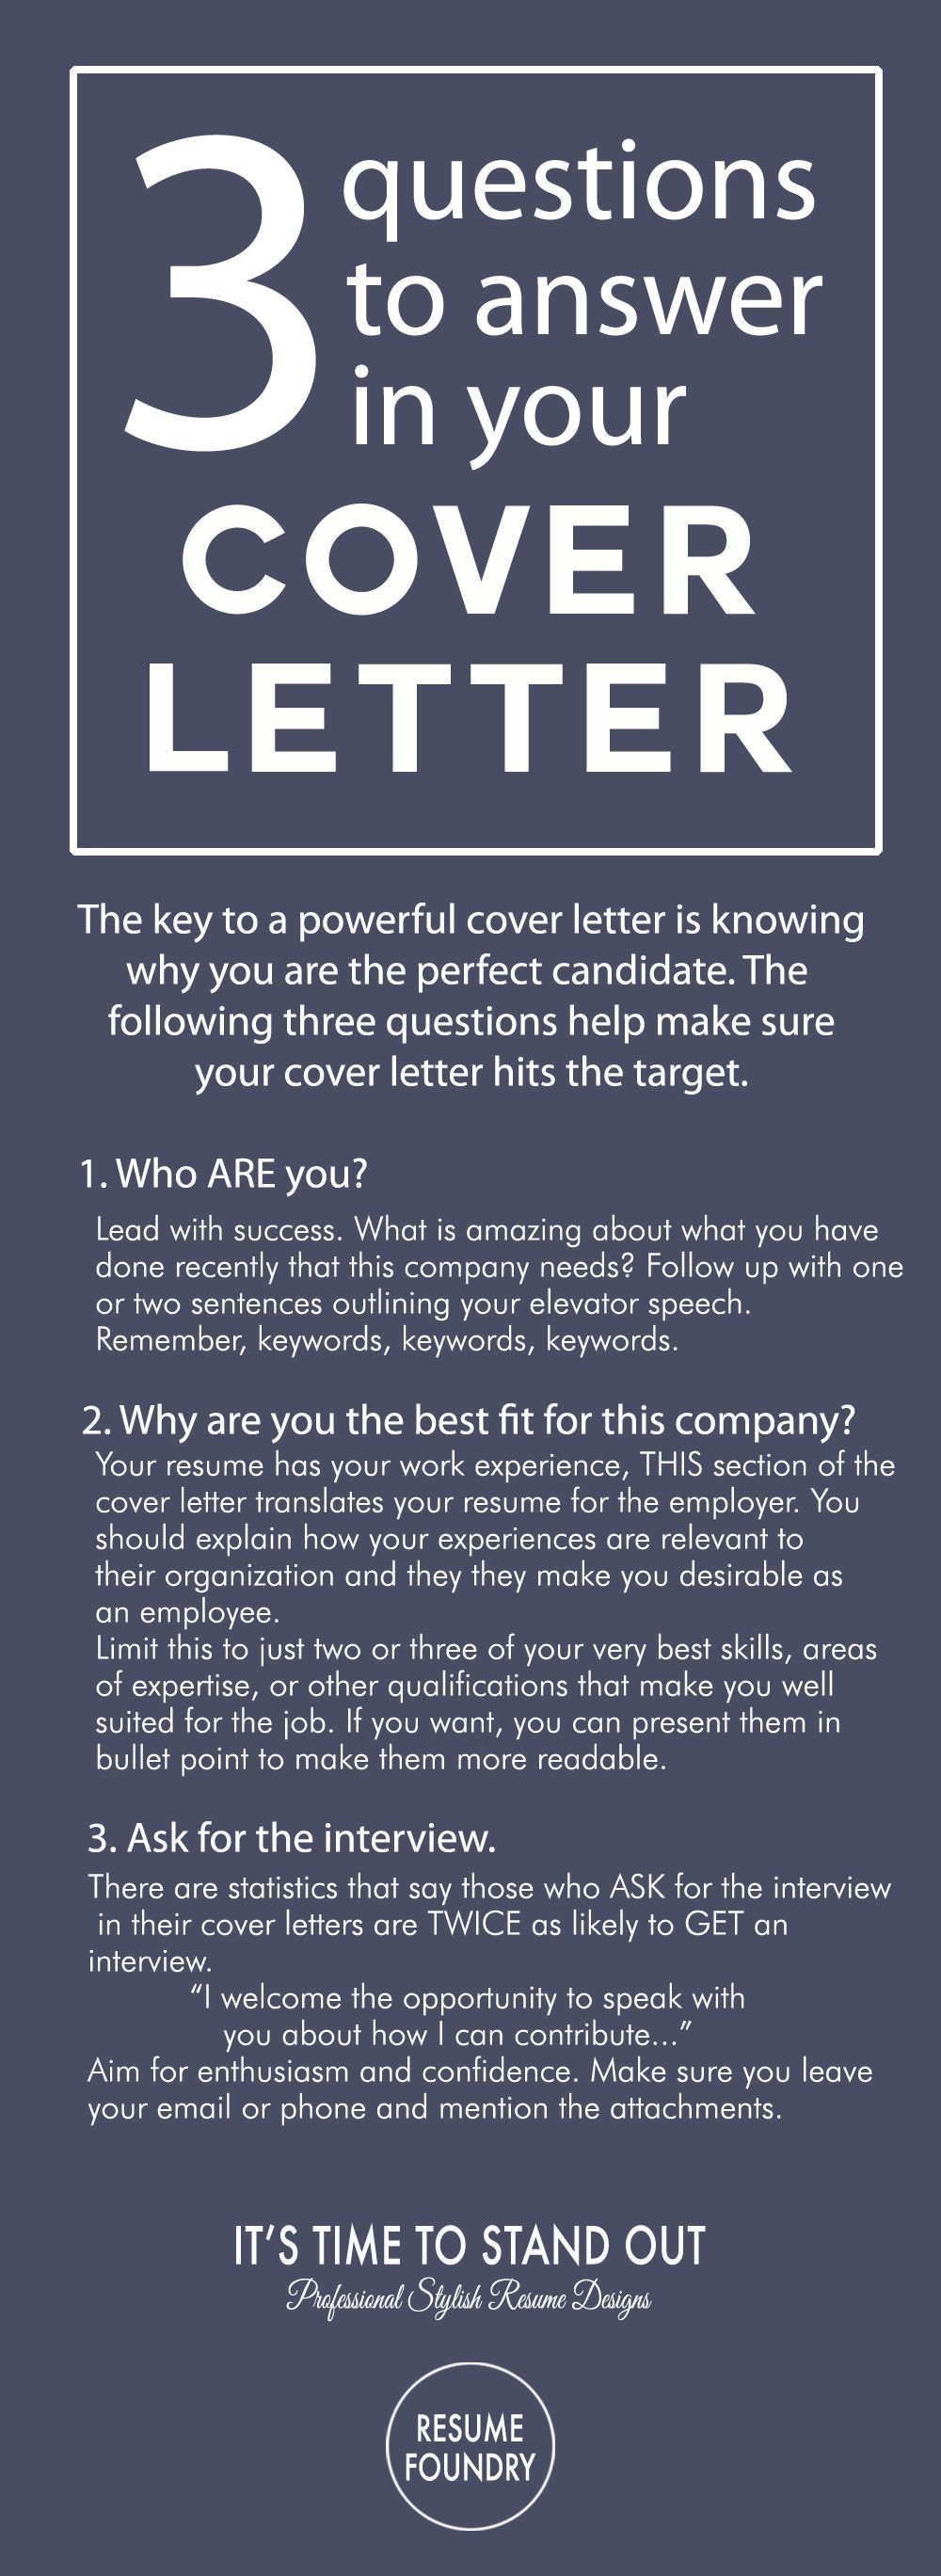 resume archives page of resume infographic and perfect the resume deliver it to your dream job and voila new beginnings we look forward to your success stories of landing your new job and feel